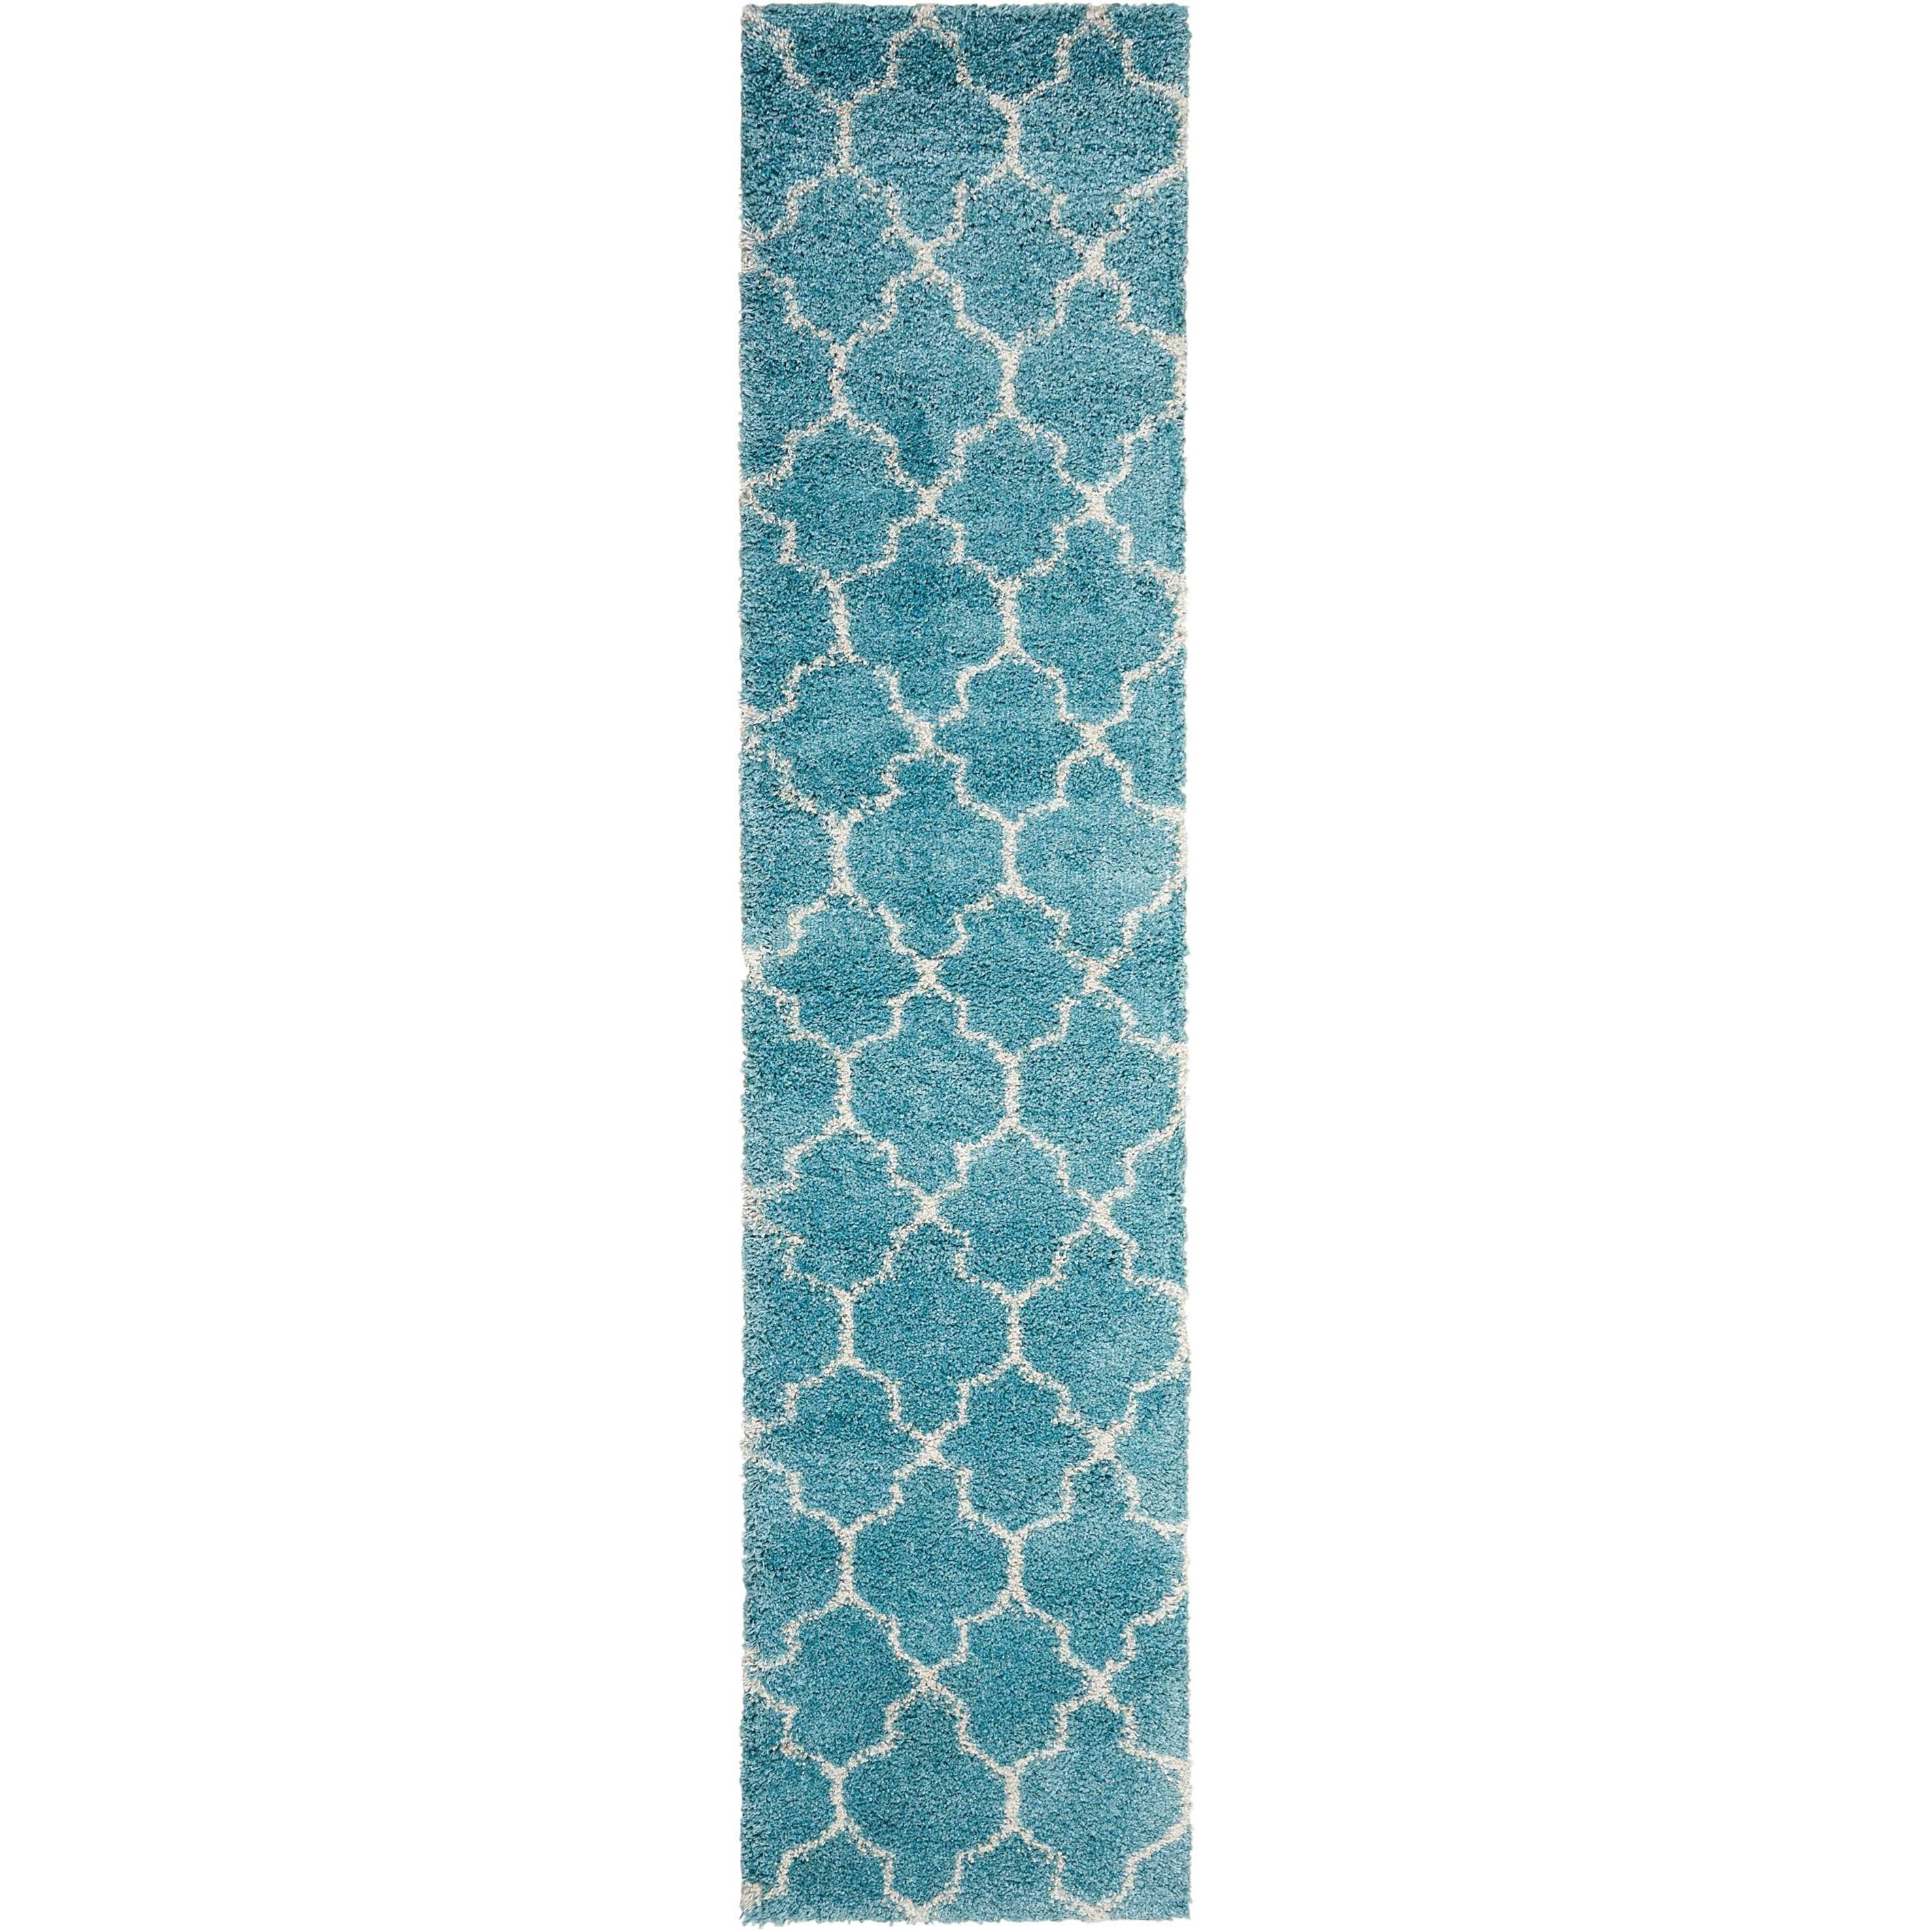 "Amore 2'2"" x 7'6"" Aqua Runner Rug by Nourison at Sprintz Furniture"